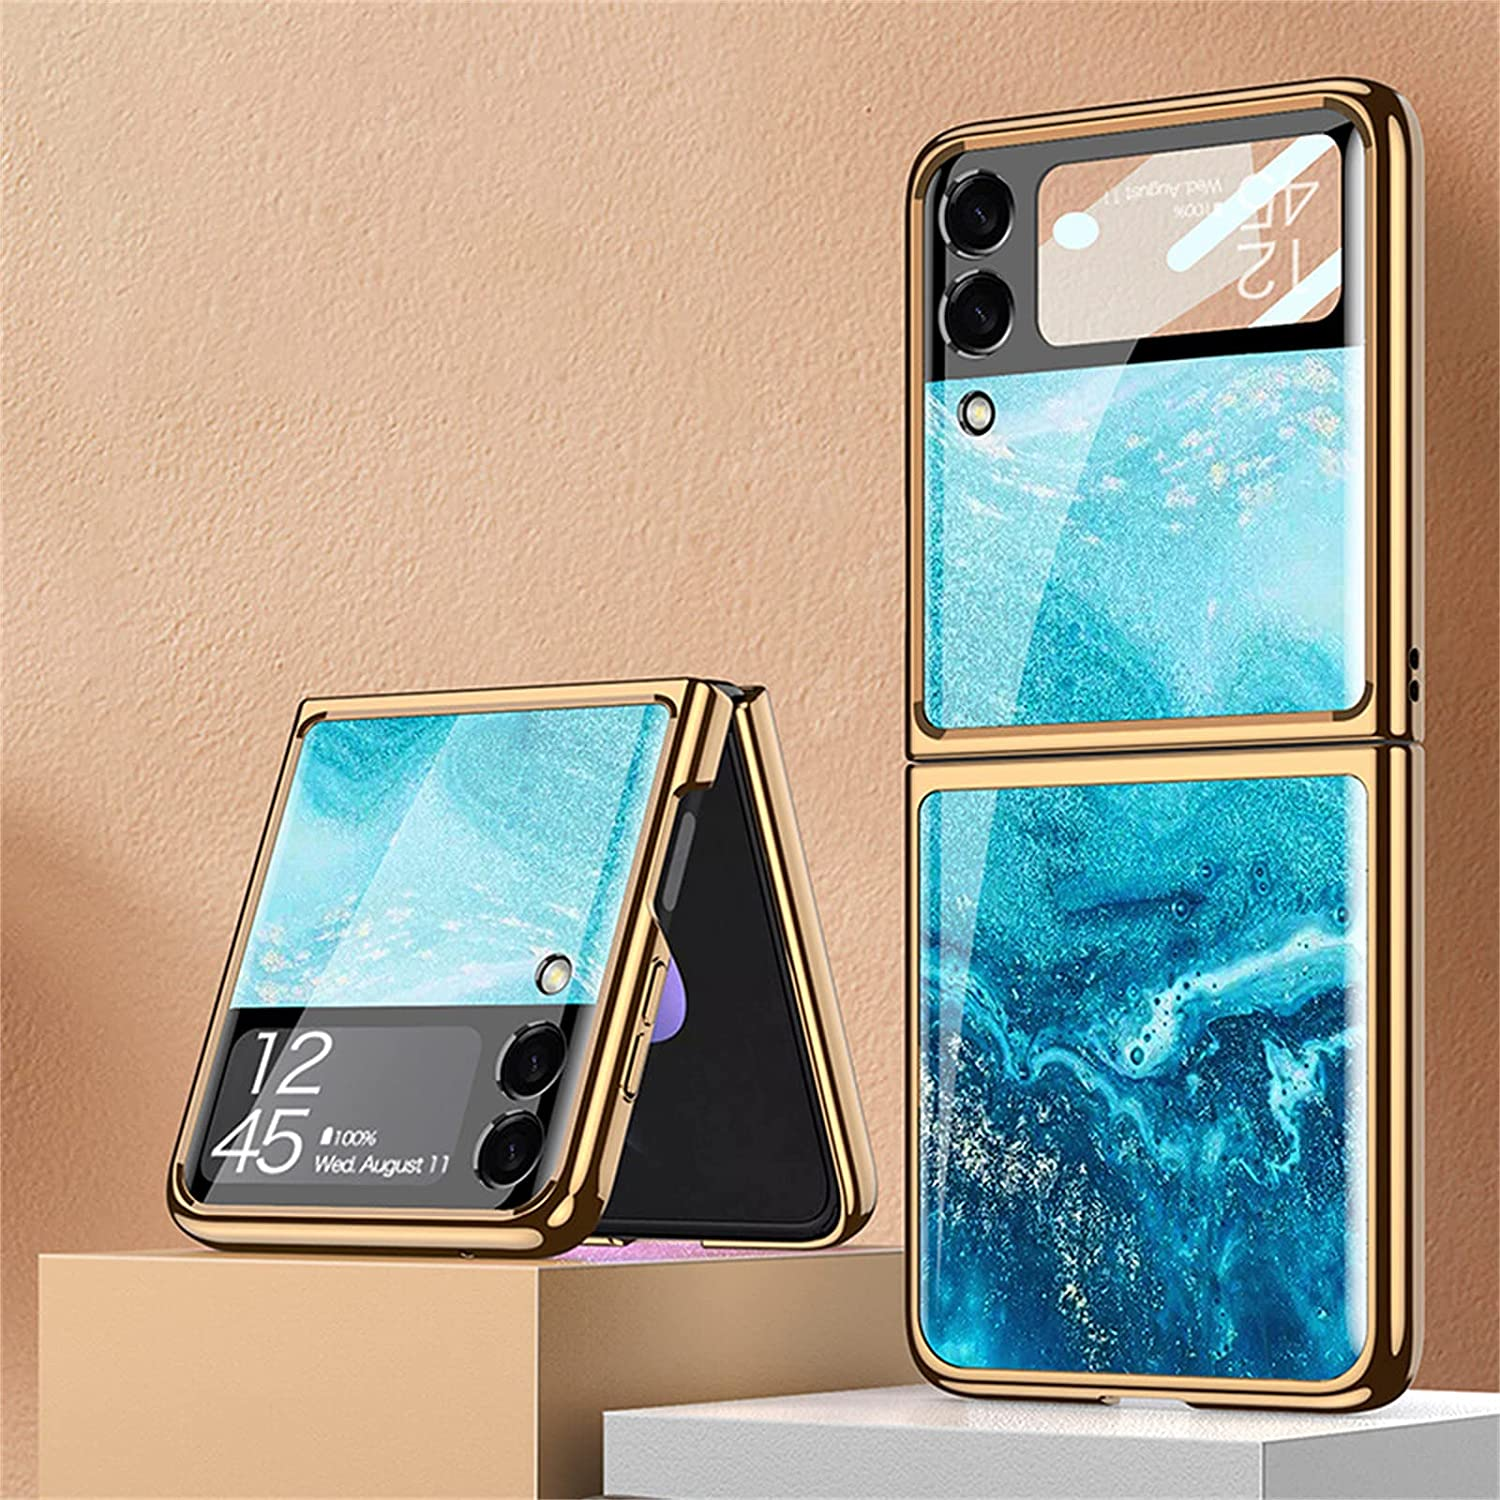 Suitable for Samsung Galaxy Z Flip 3 5G Luxury Phone Case, Tempered Glass Bumper Flip Protector for Galaxy Z Flip 3 5G 2021 (Artistry,A)